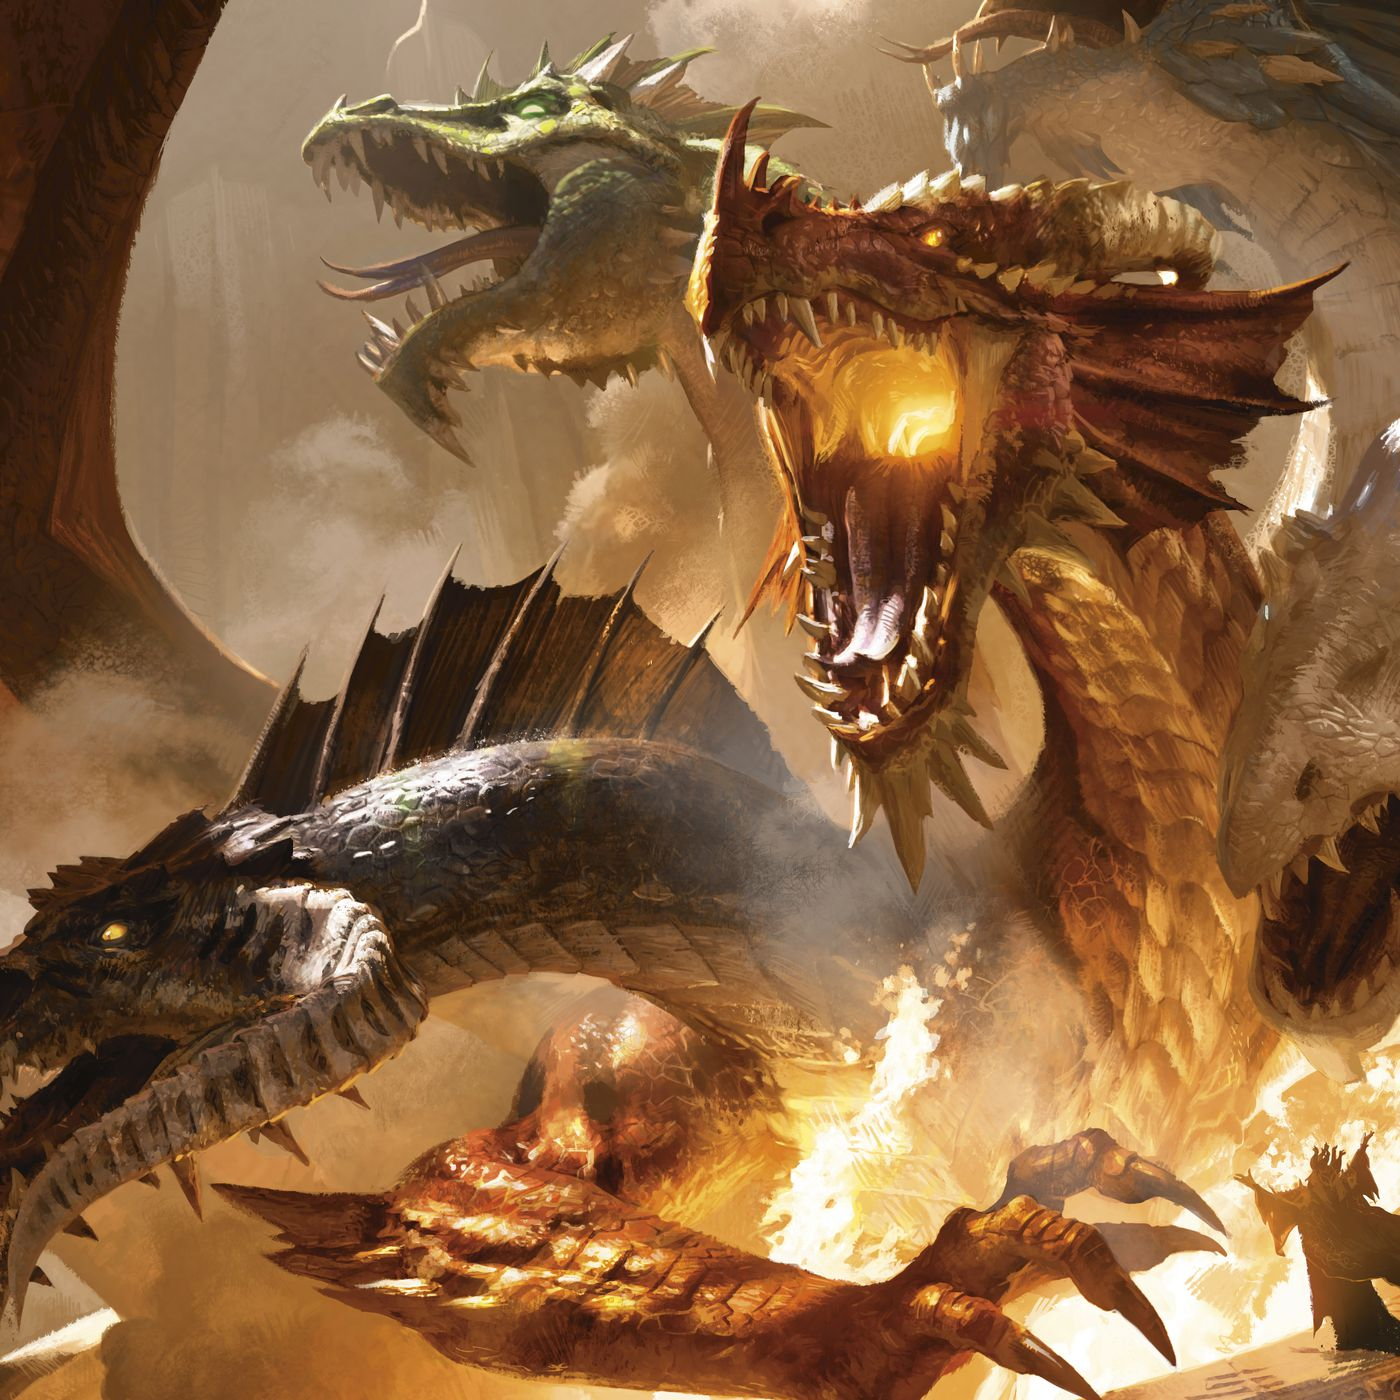 Dungeons & Dragons is booming online, but not in the way you